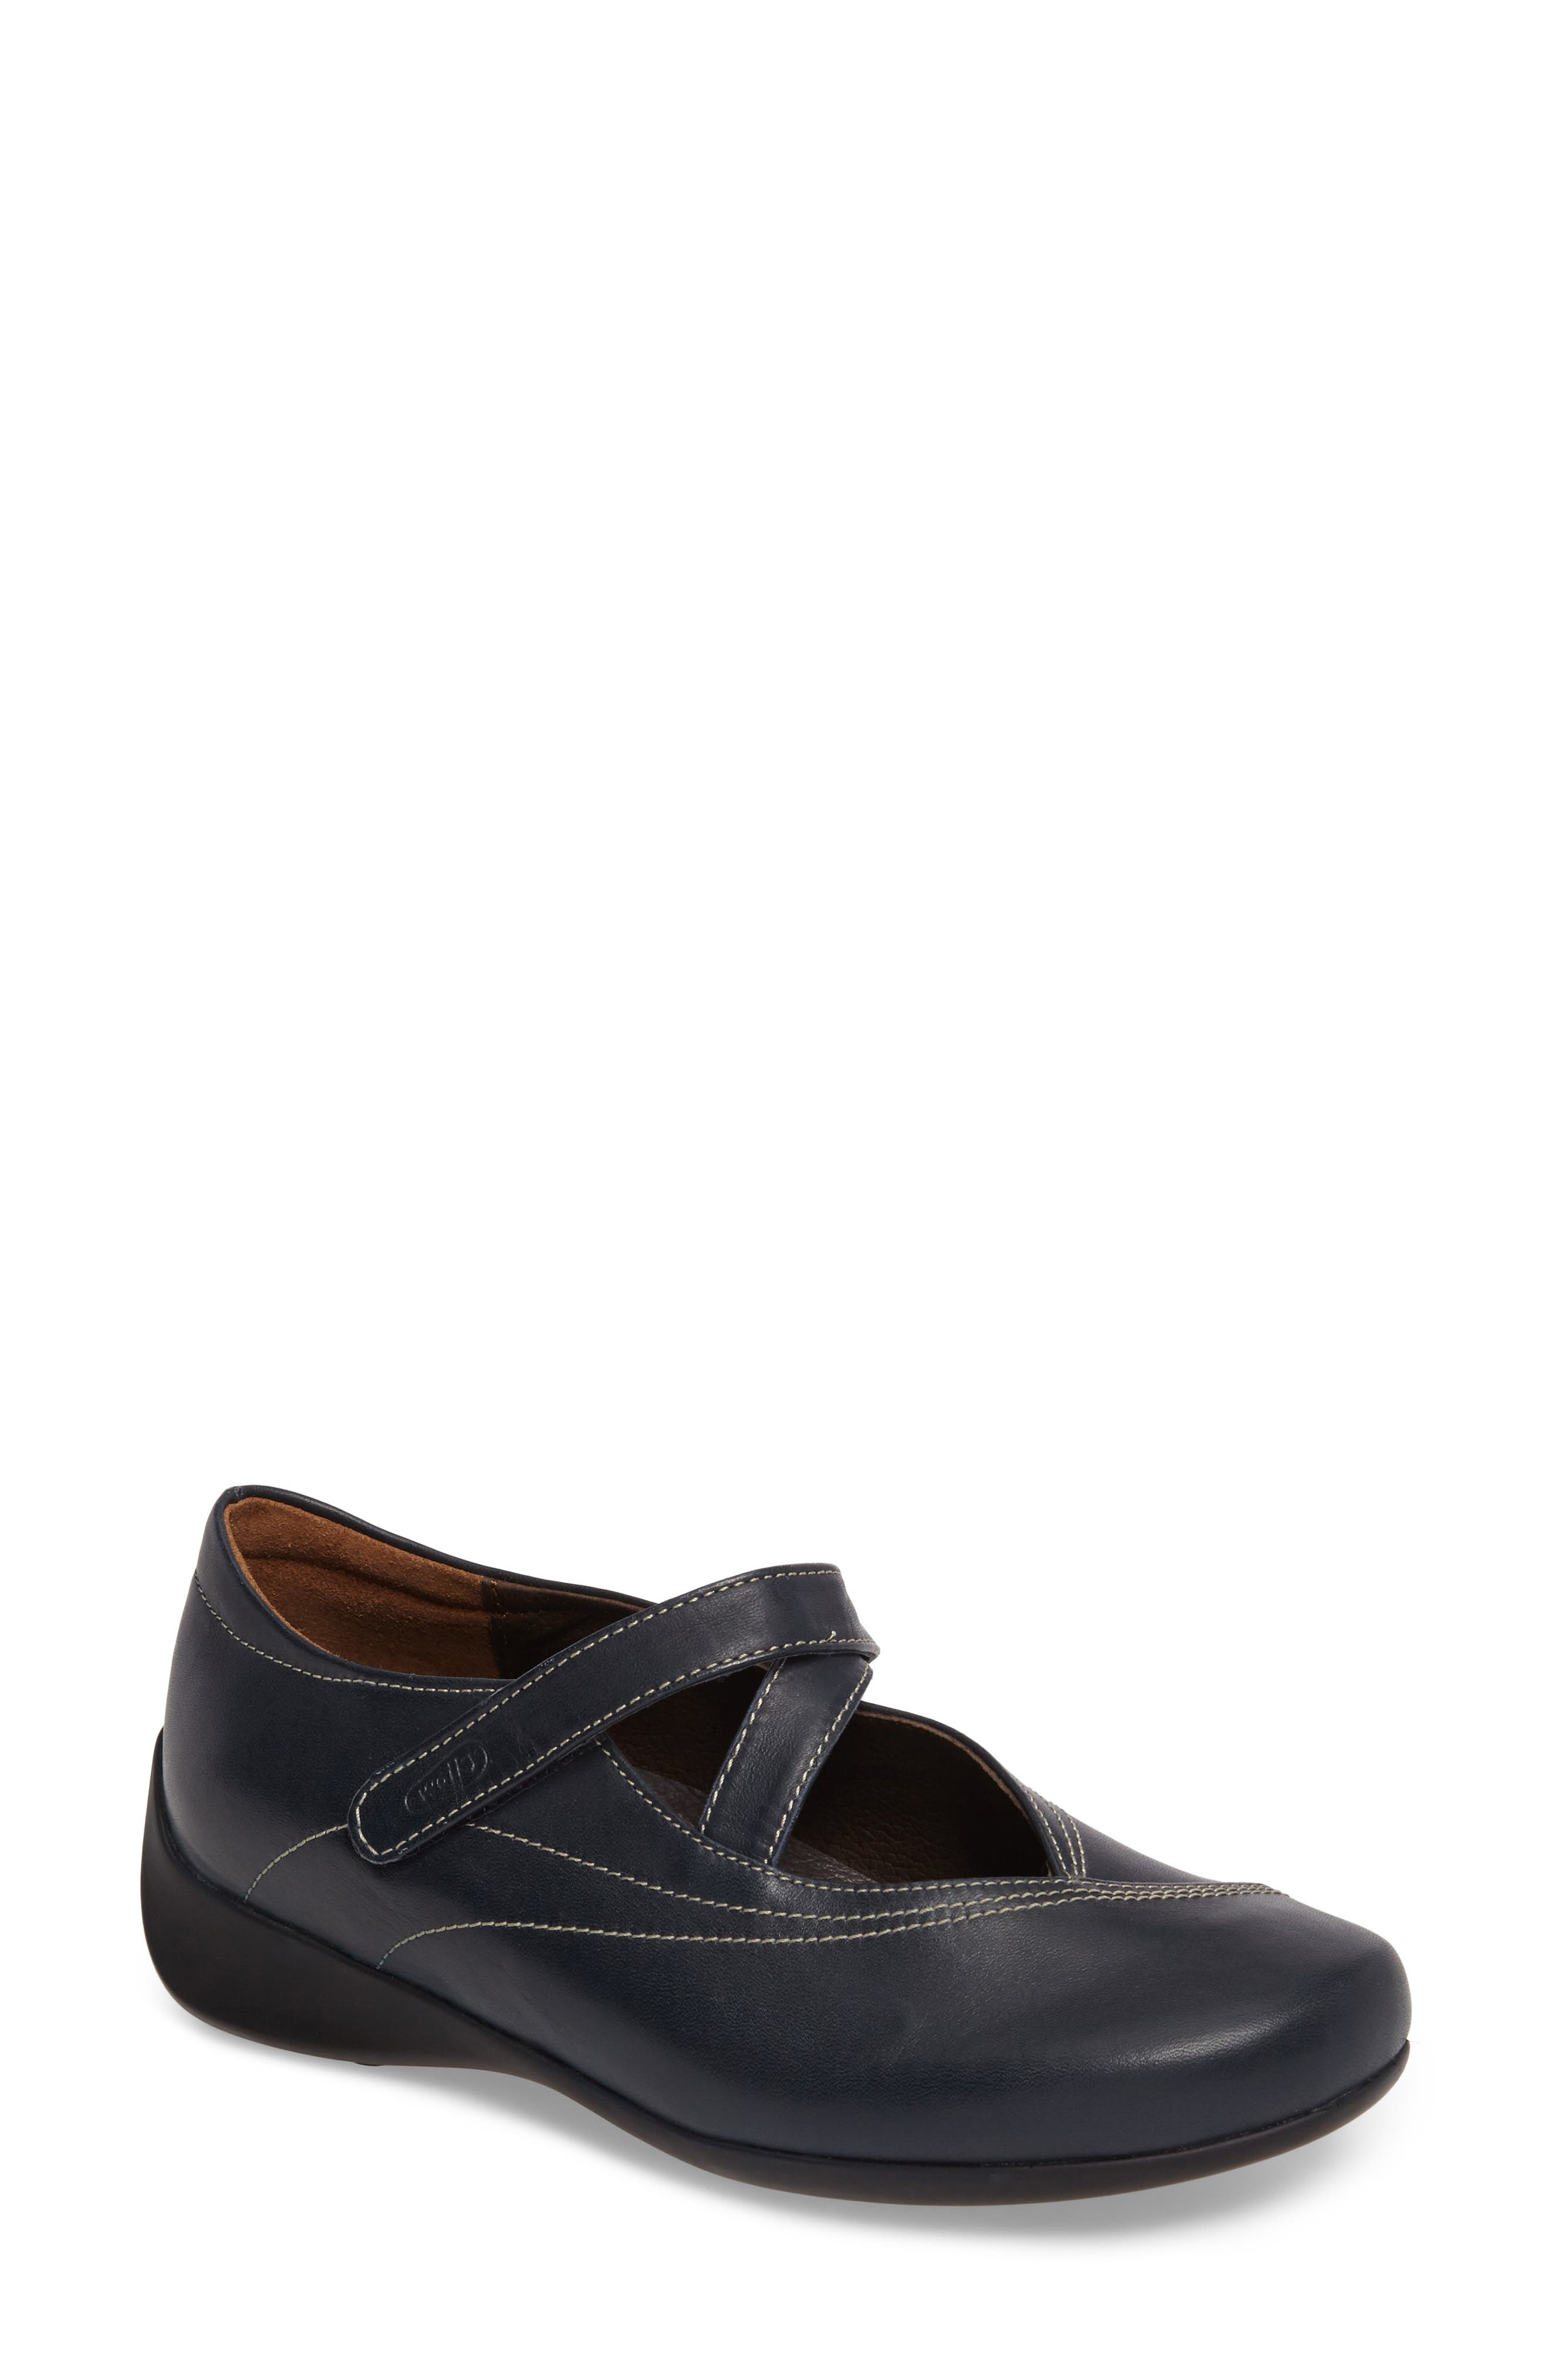 WOLKY Passion Mary Jane Flat, Main, color, NAVY LEATHER